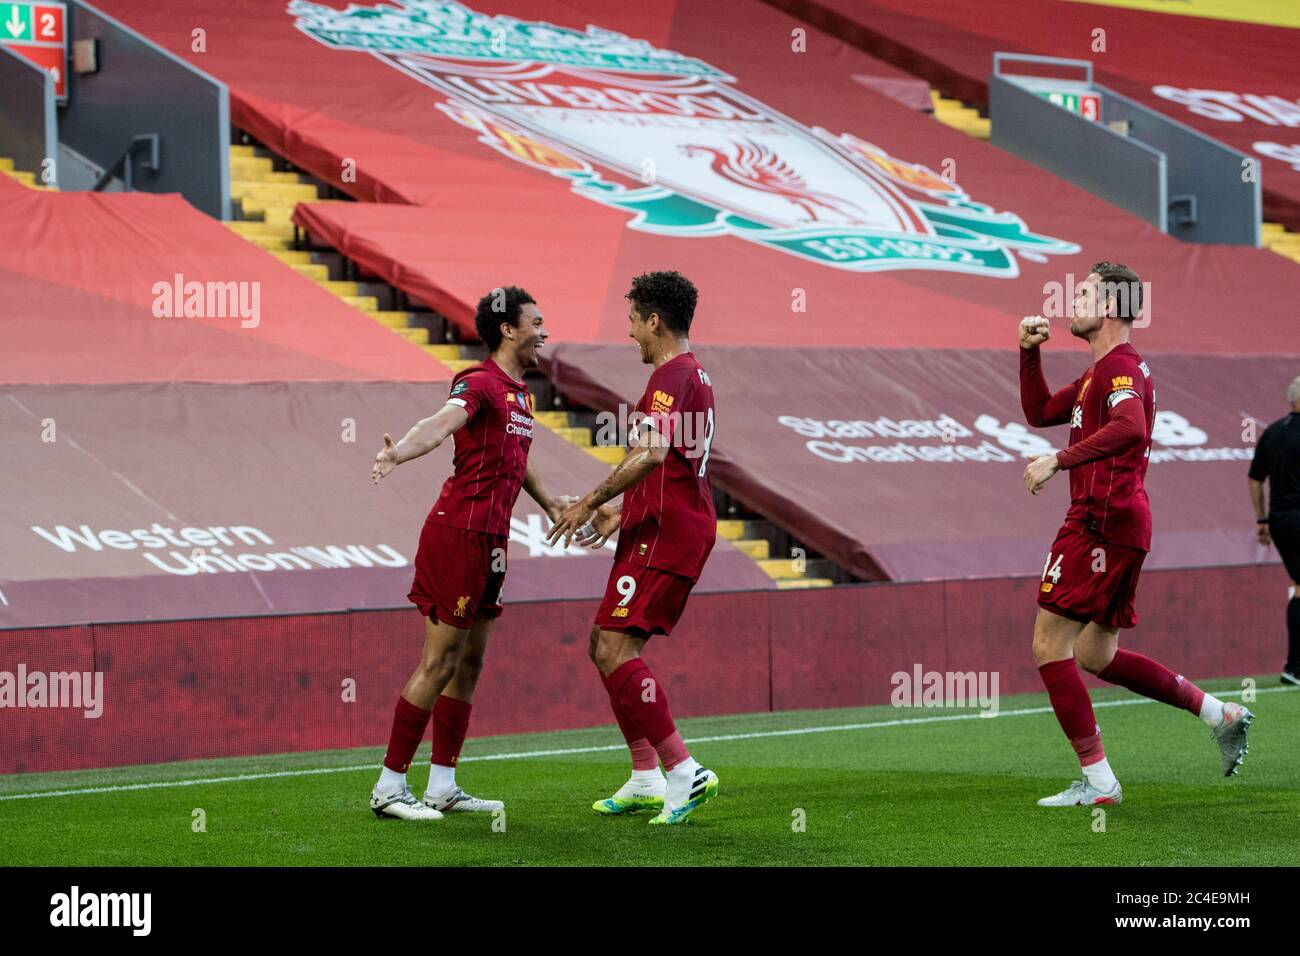 Premier League Match Between Liverpool Fc And Crystal Palace At Anfield On June 24 2020 In Liverpool United Kingdom Stock Photo Alamy